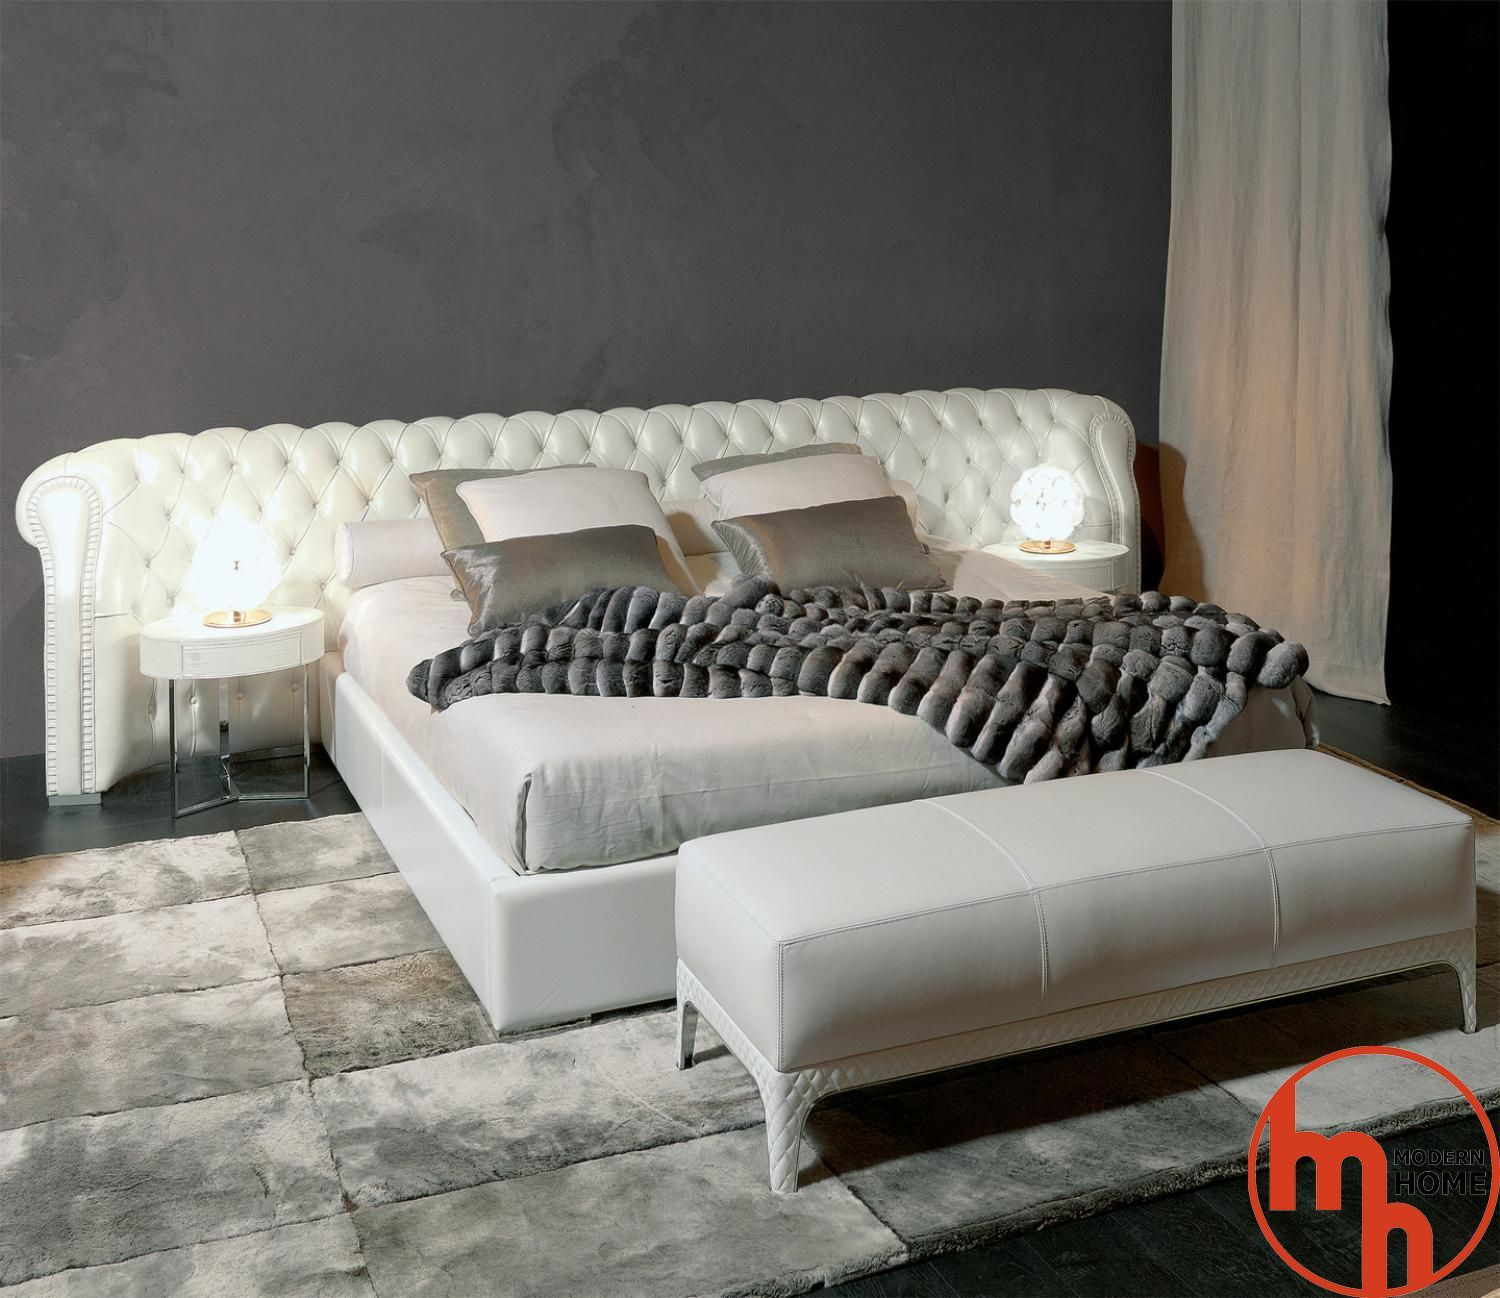 Beds Rugiano - Beds Buy at the request | modernh.com